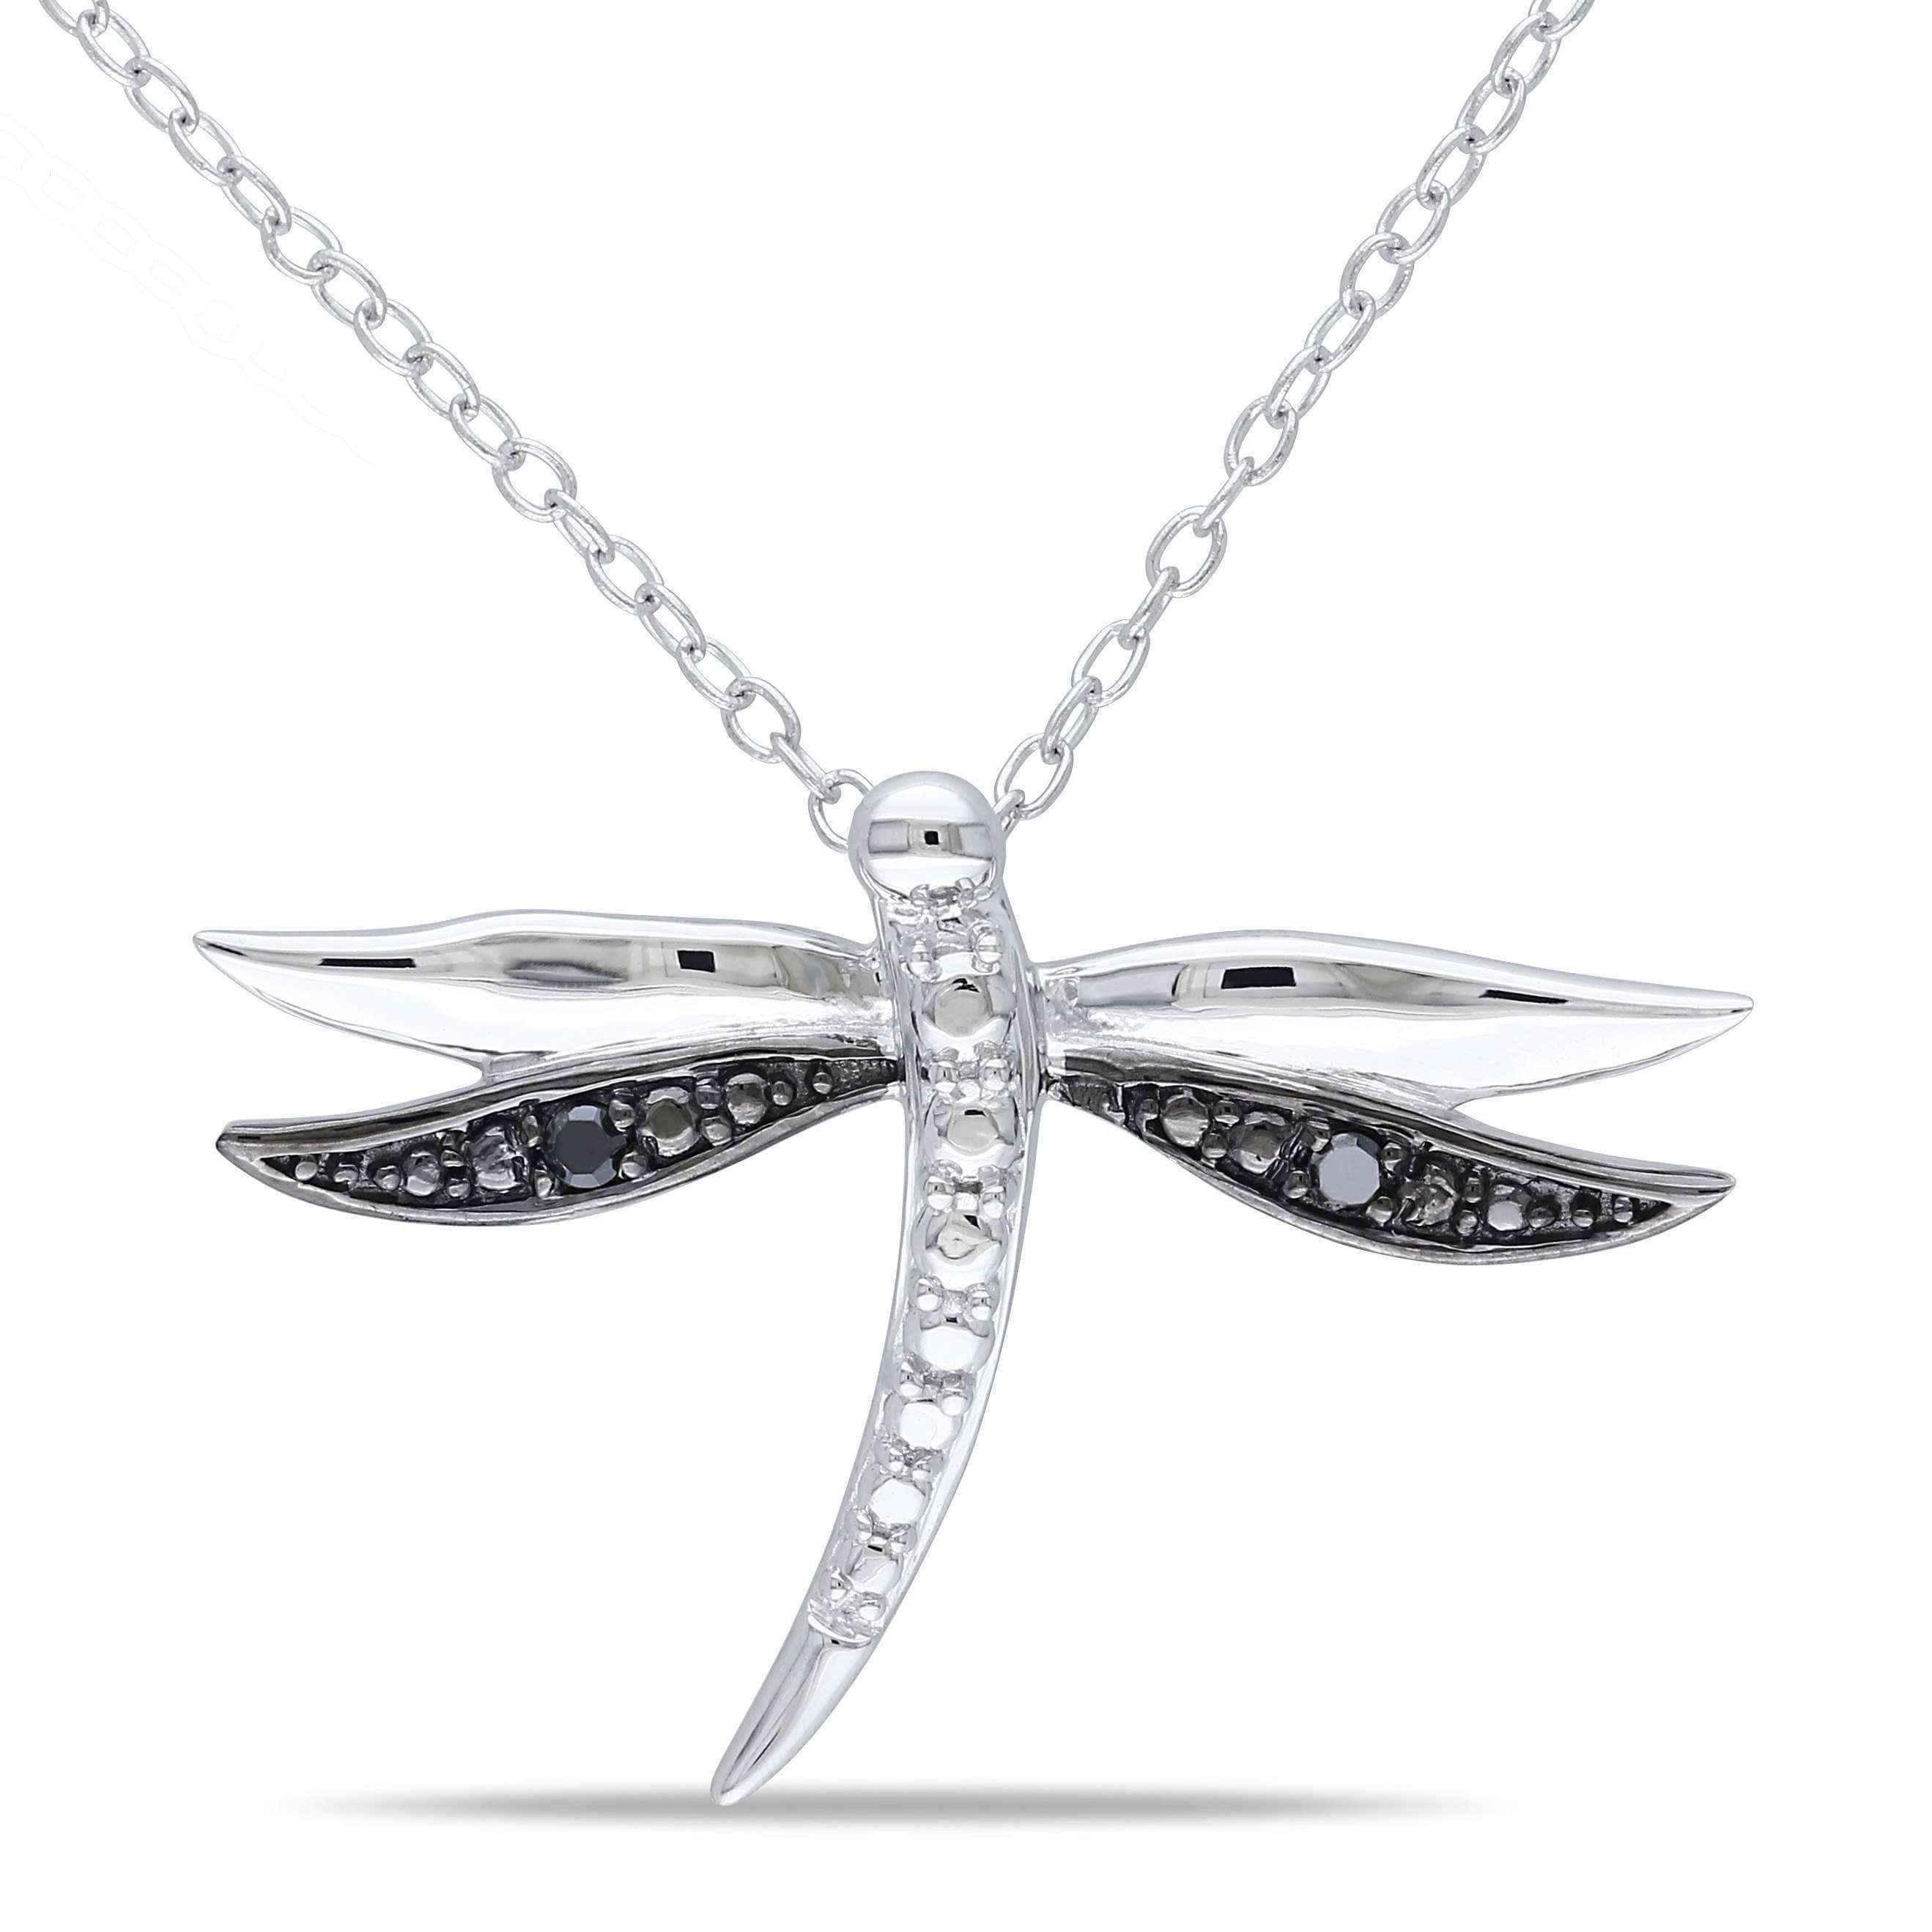 af pendant inch silver sterling open jewelry necklace dragonfly bling winged